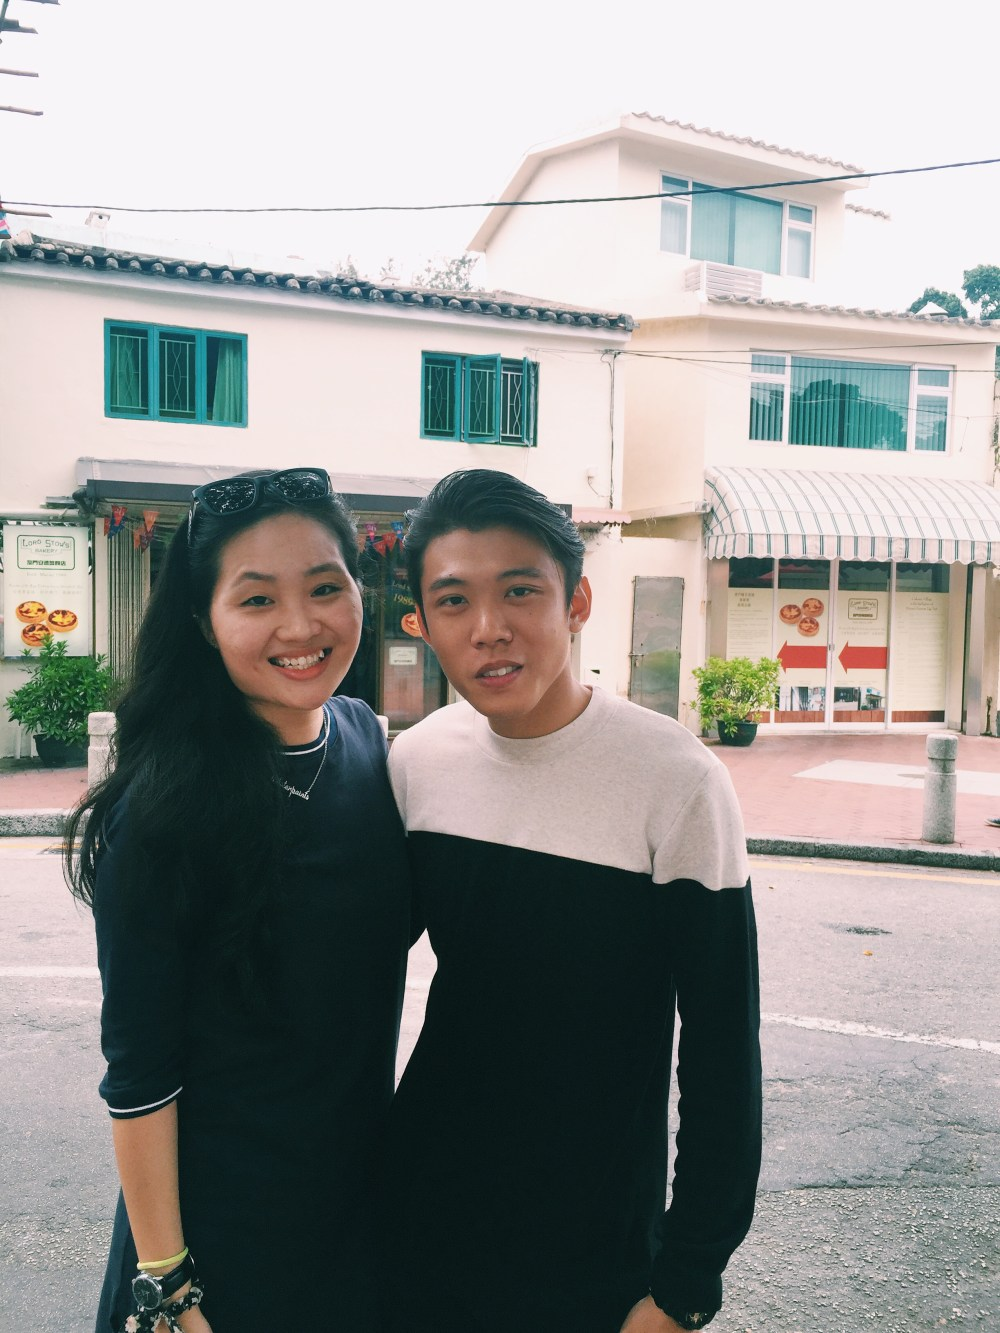 6 Nov 2015: Coloane Village | Macau, China